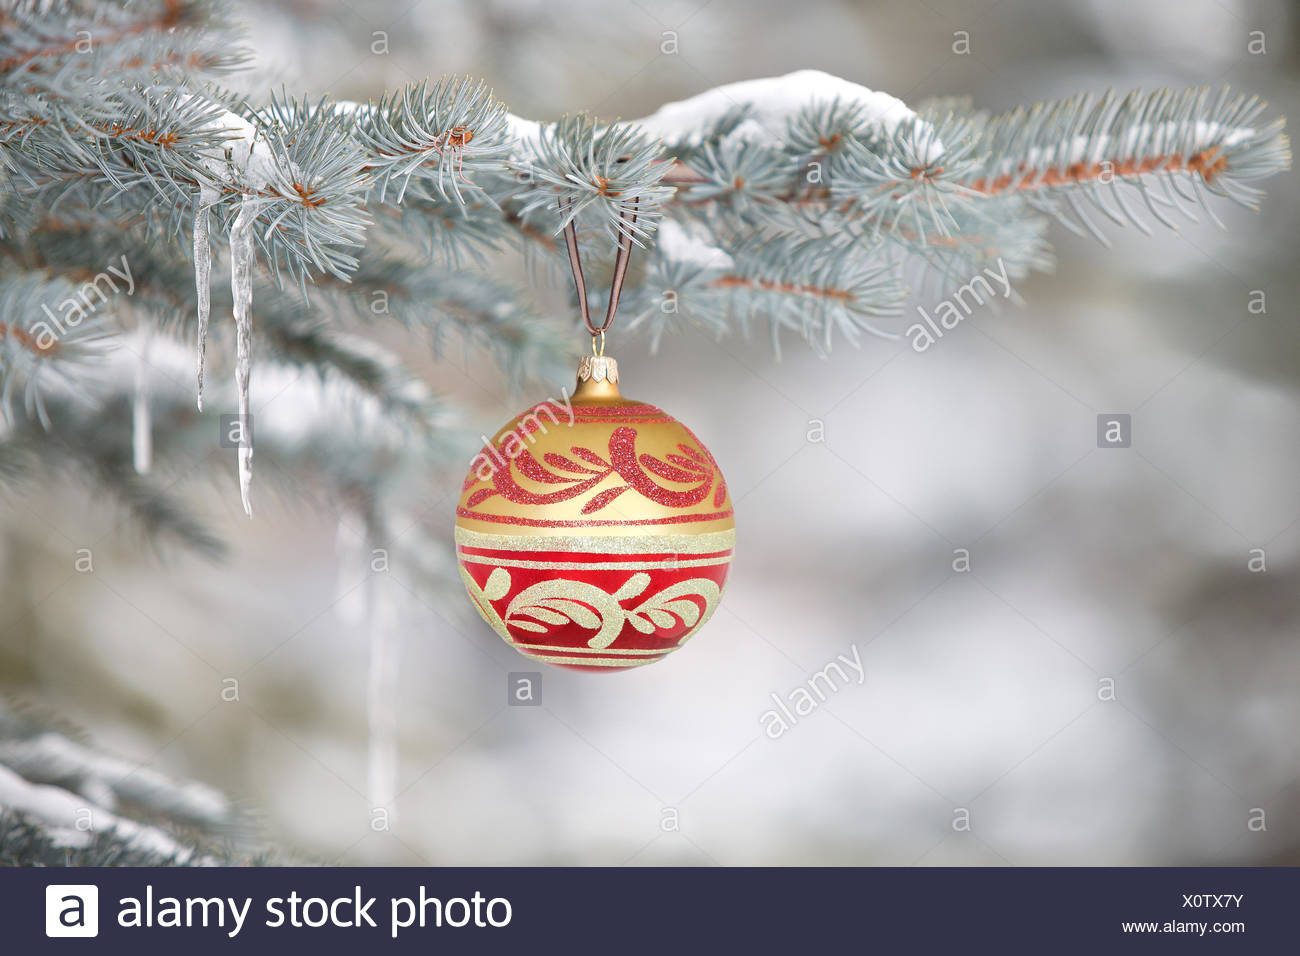 Christmas ornament hanging on tree with icicles - Stock Image